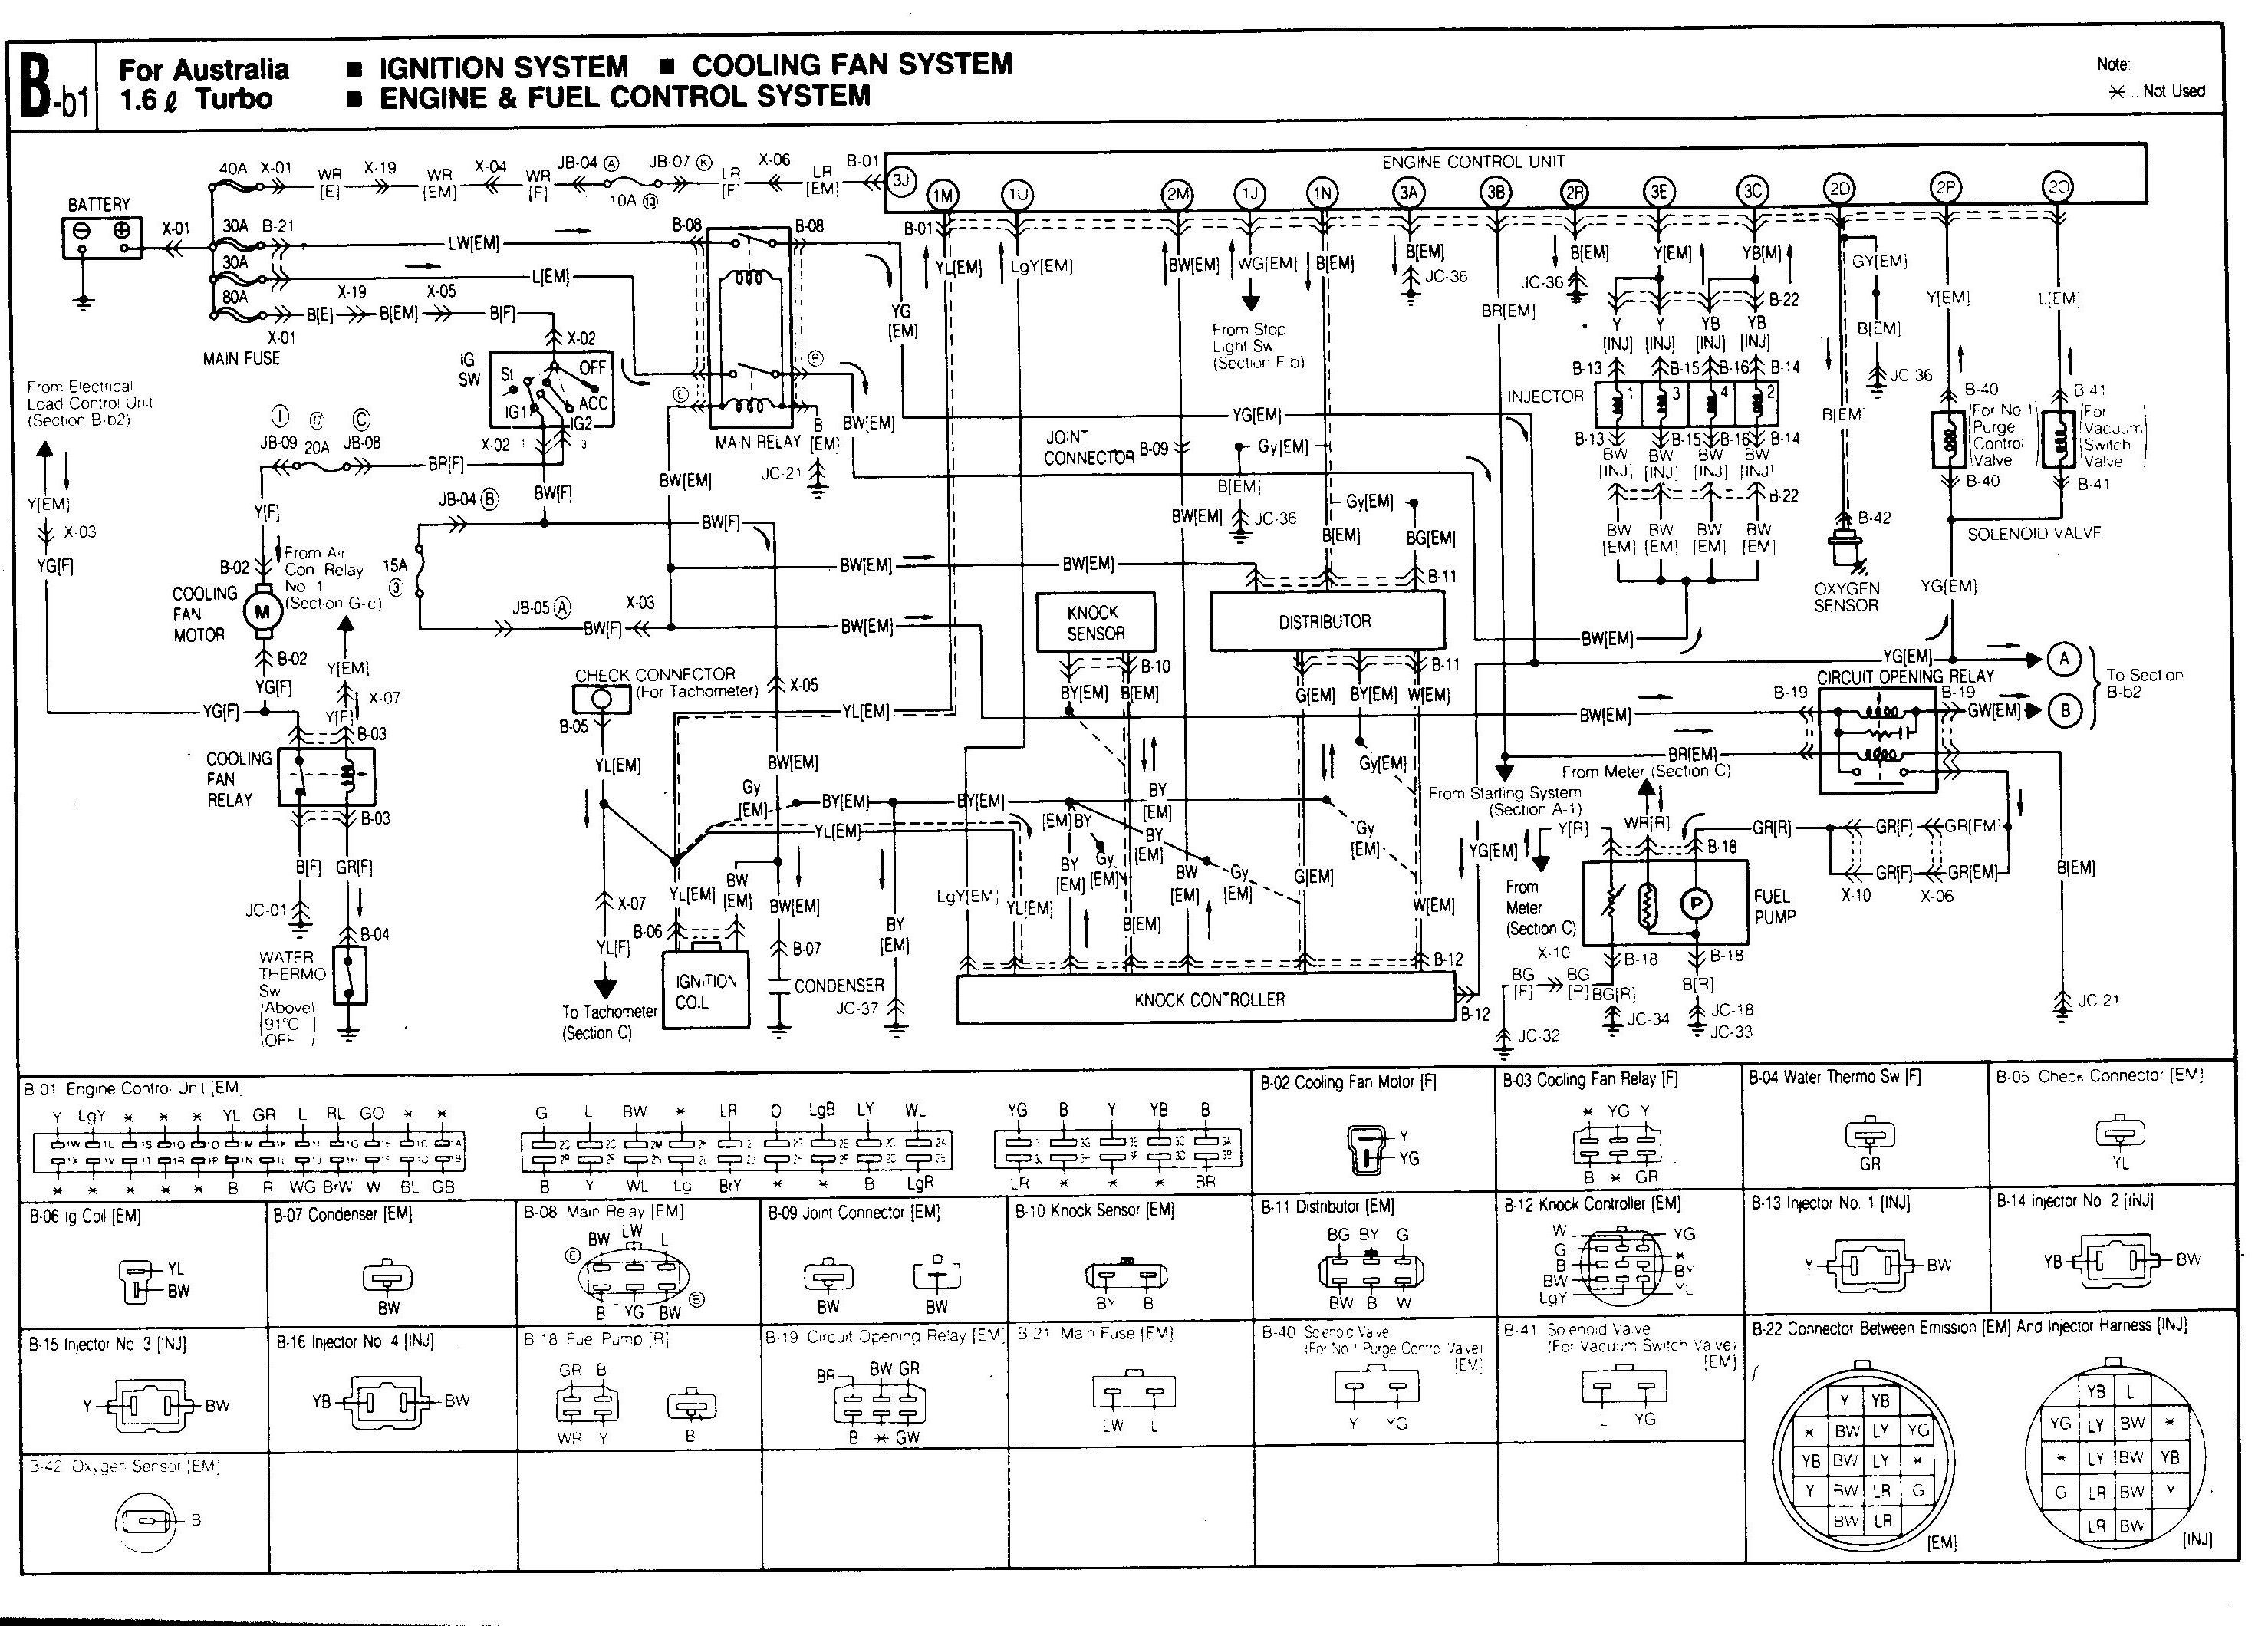 2007 Kia Optima Engine Diagram Wiring Diagram Kia Bongo Wire Data Schema • Of 2007 Kia Optima Engine Diagram Kia Diagram Wirings Layout Wiring Diagrams •